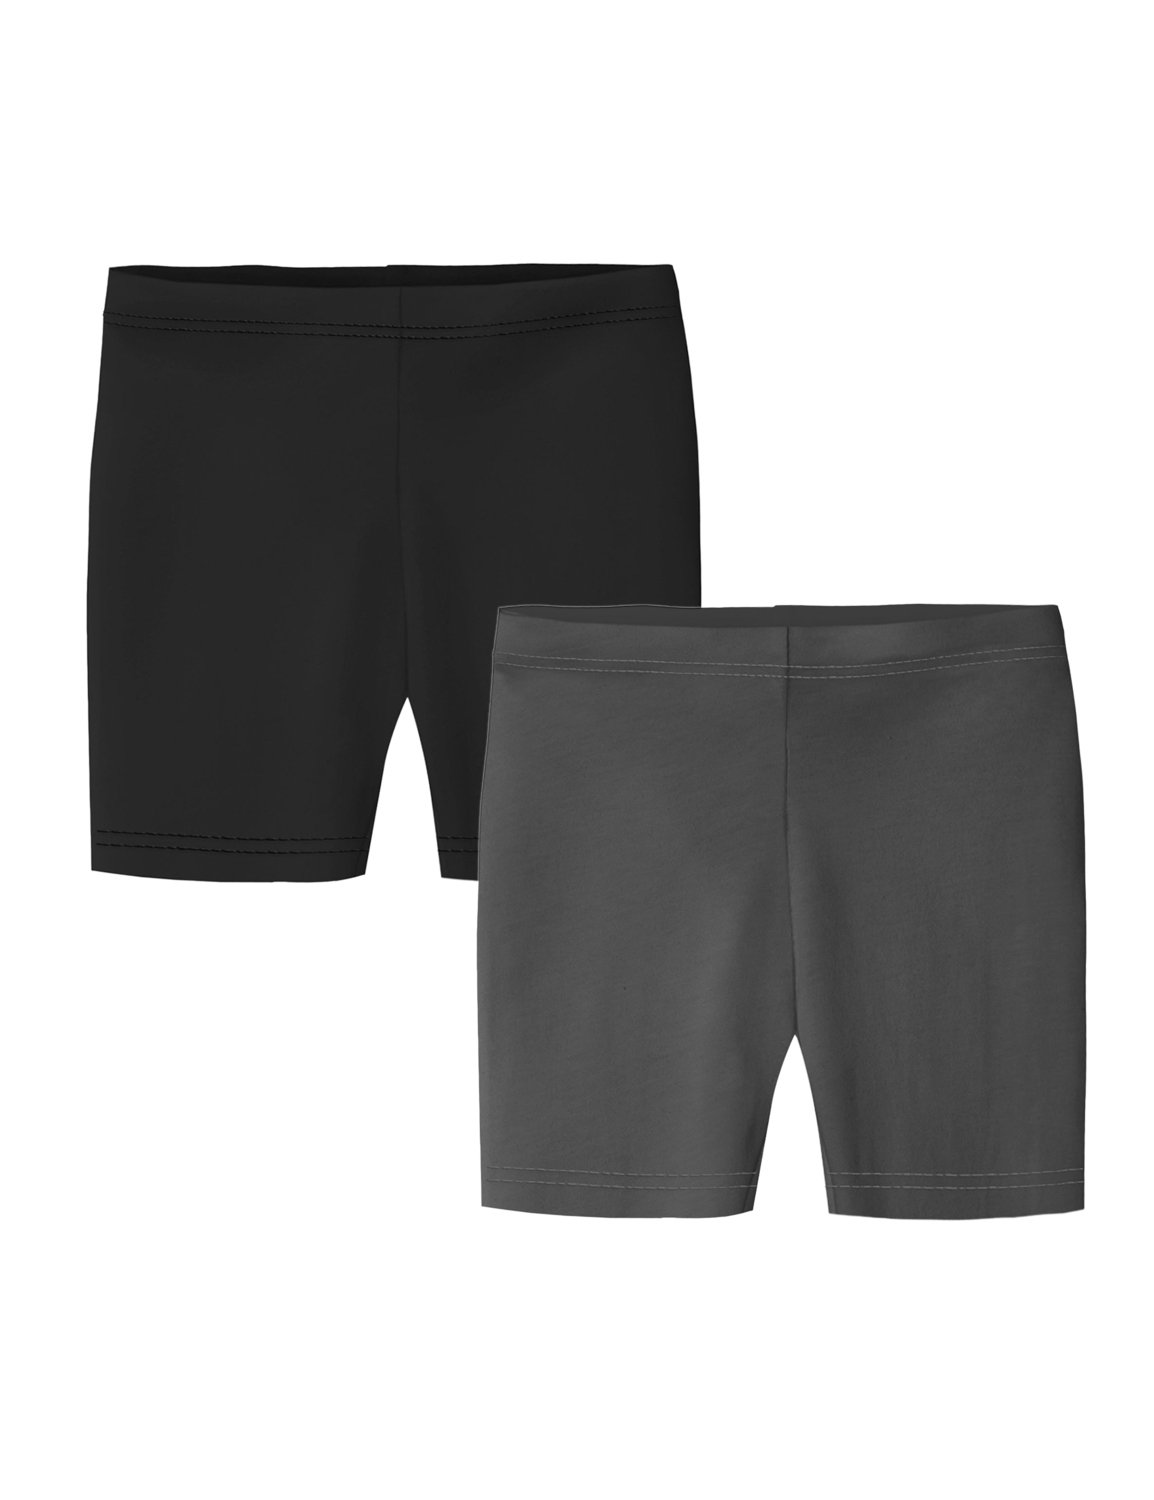 Clementine Apparel Big Girls' Bike Shorts 2 Pack, Black/Dark Gray, 14